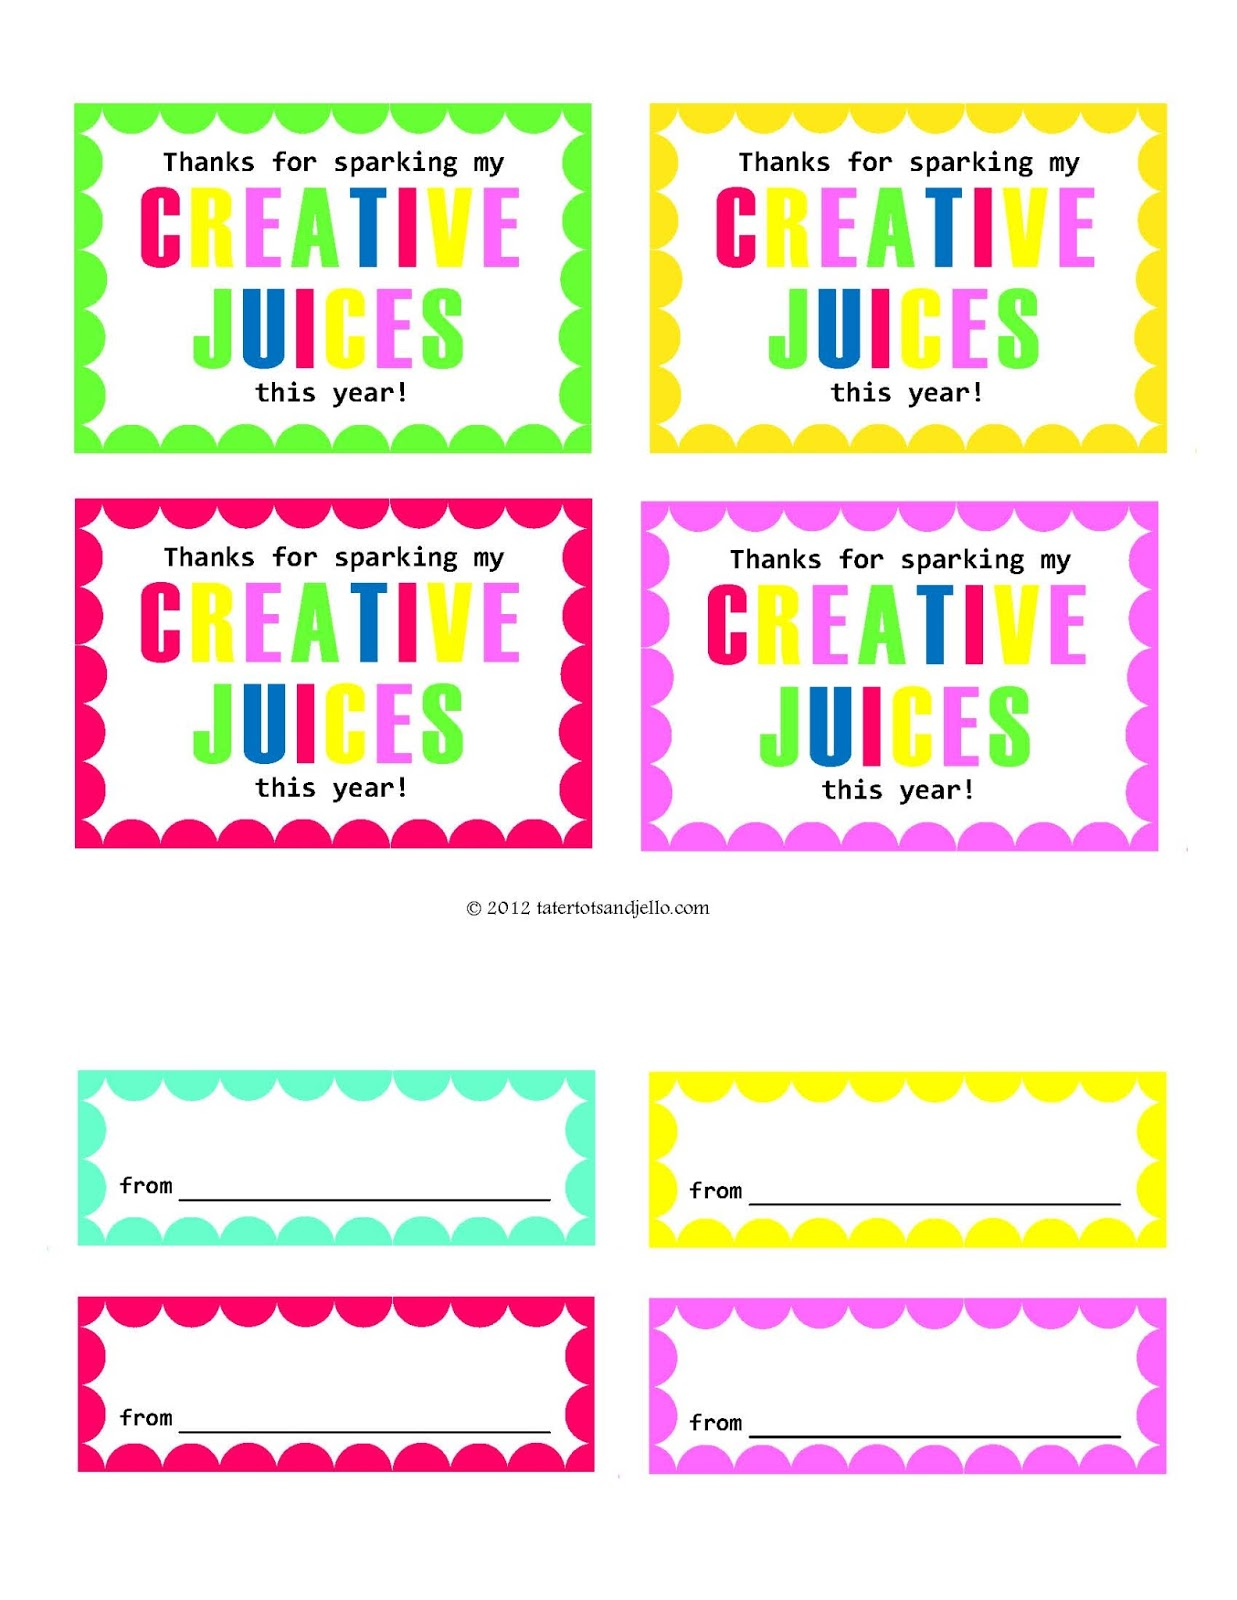 Versatile image for teacher appreciation printable tags